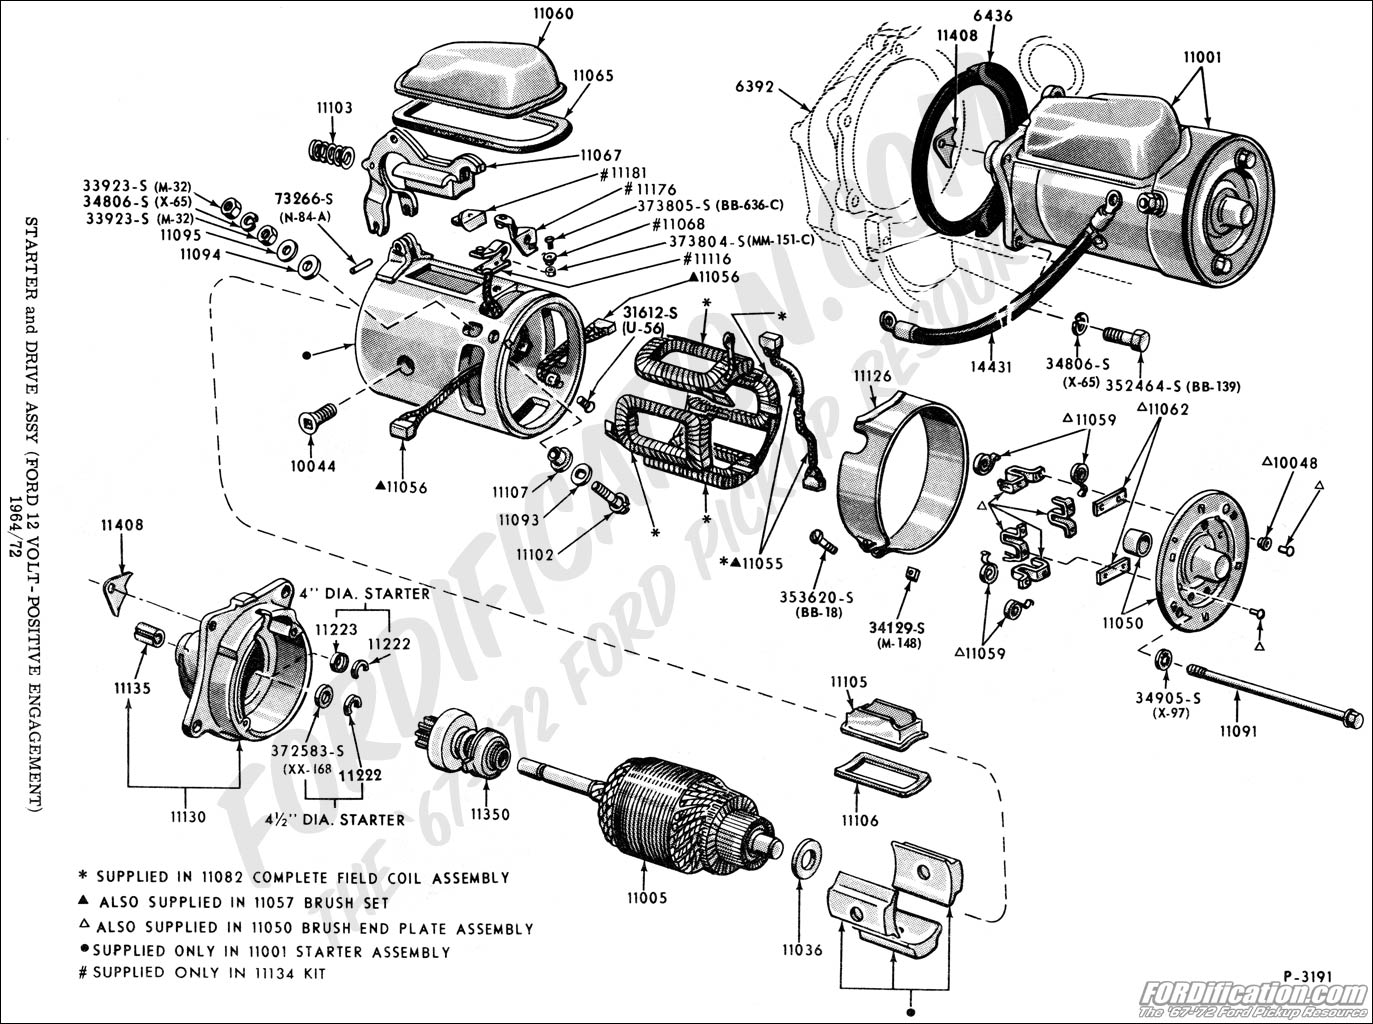 Discussion T20449 ds551854 also Ford E Series E 250 1995 Fuse Box Diagram furthermore 1033445 Wiring Diagram For Fuel Pump Circuit moreover 94 Ford Ranger Fuel Pump Wiring Diagram in addition RepairGuideContent. on ford transit radio wiring diagram